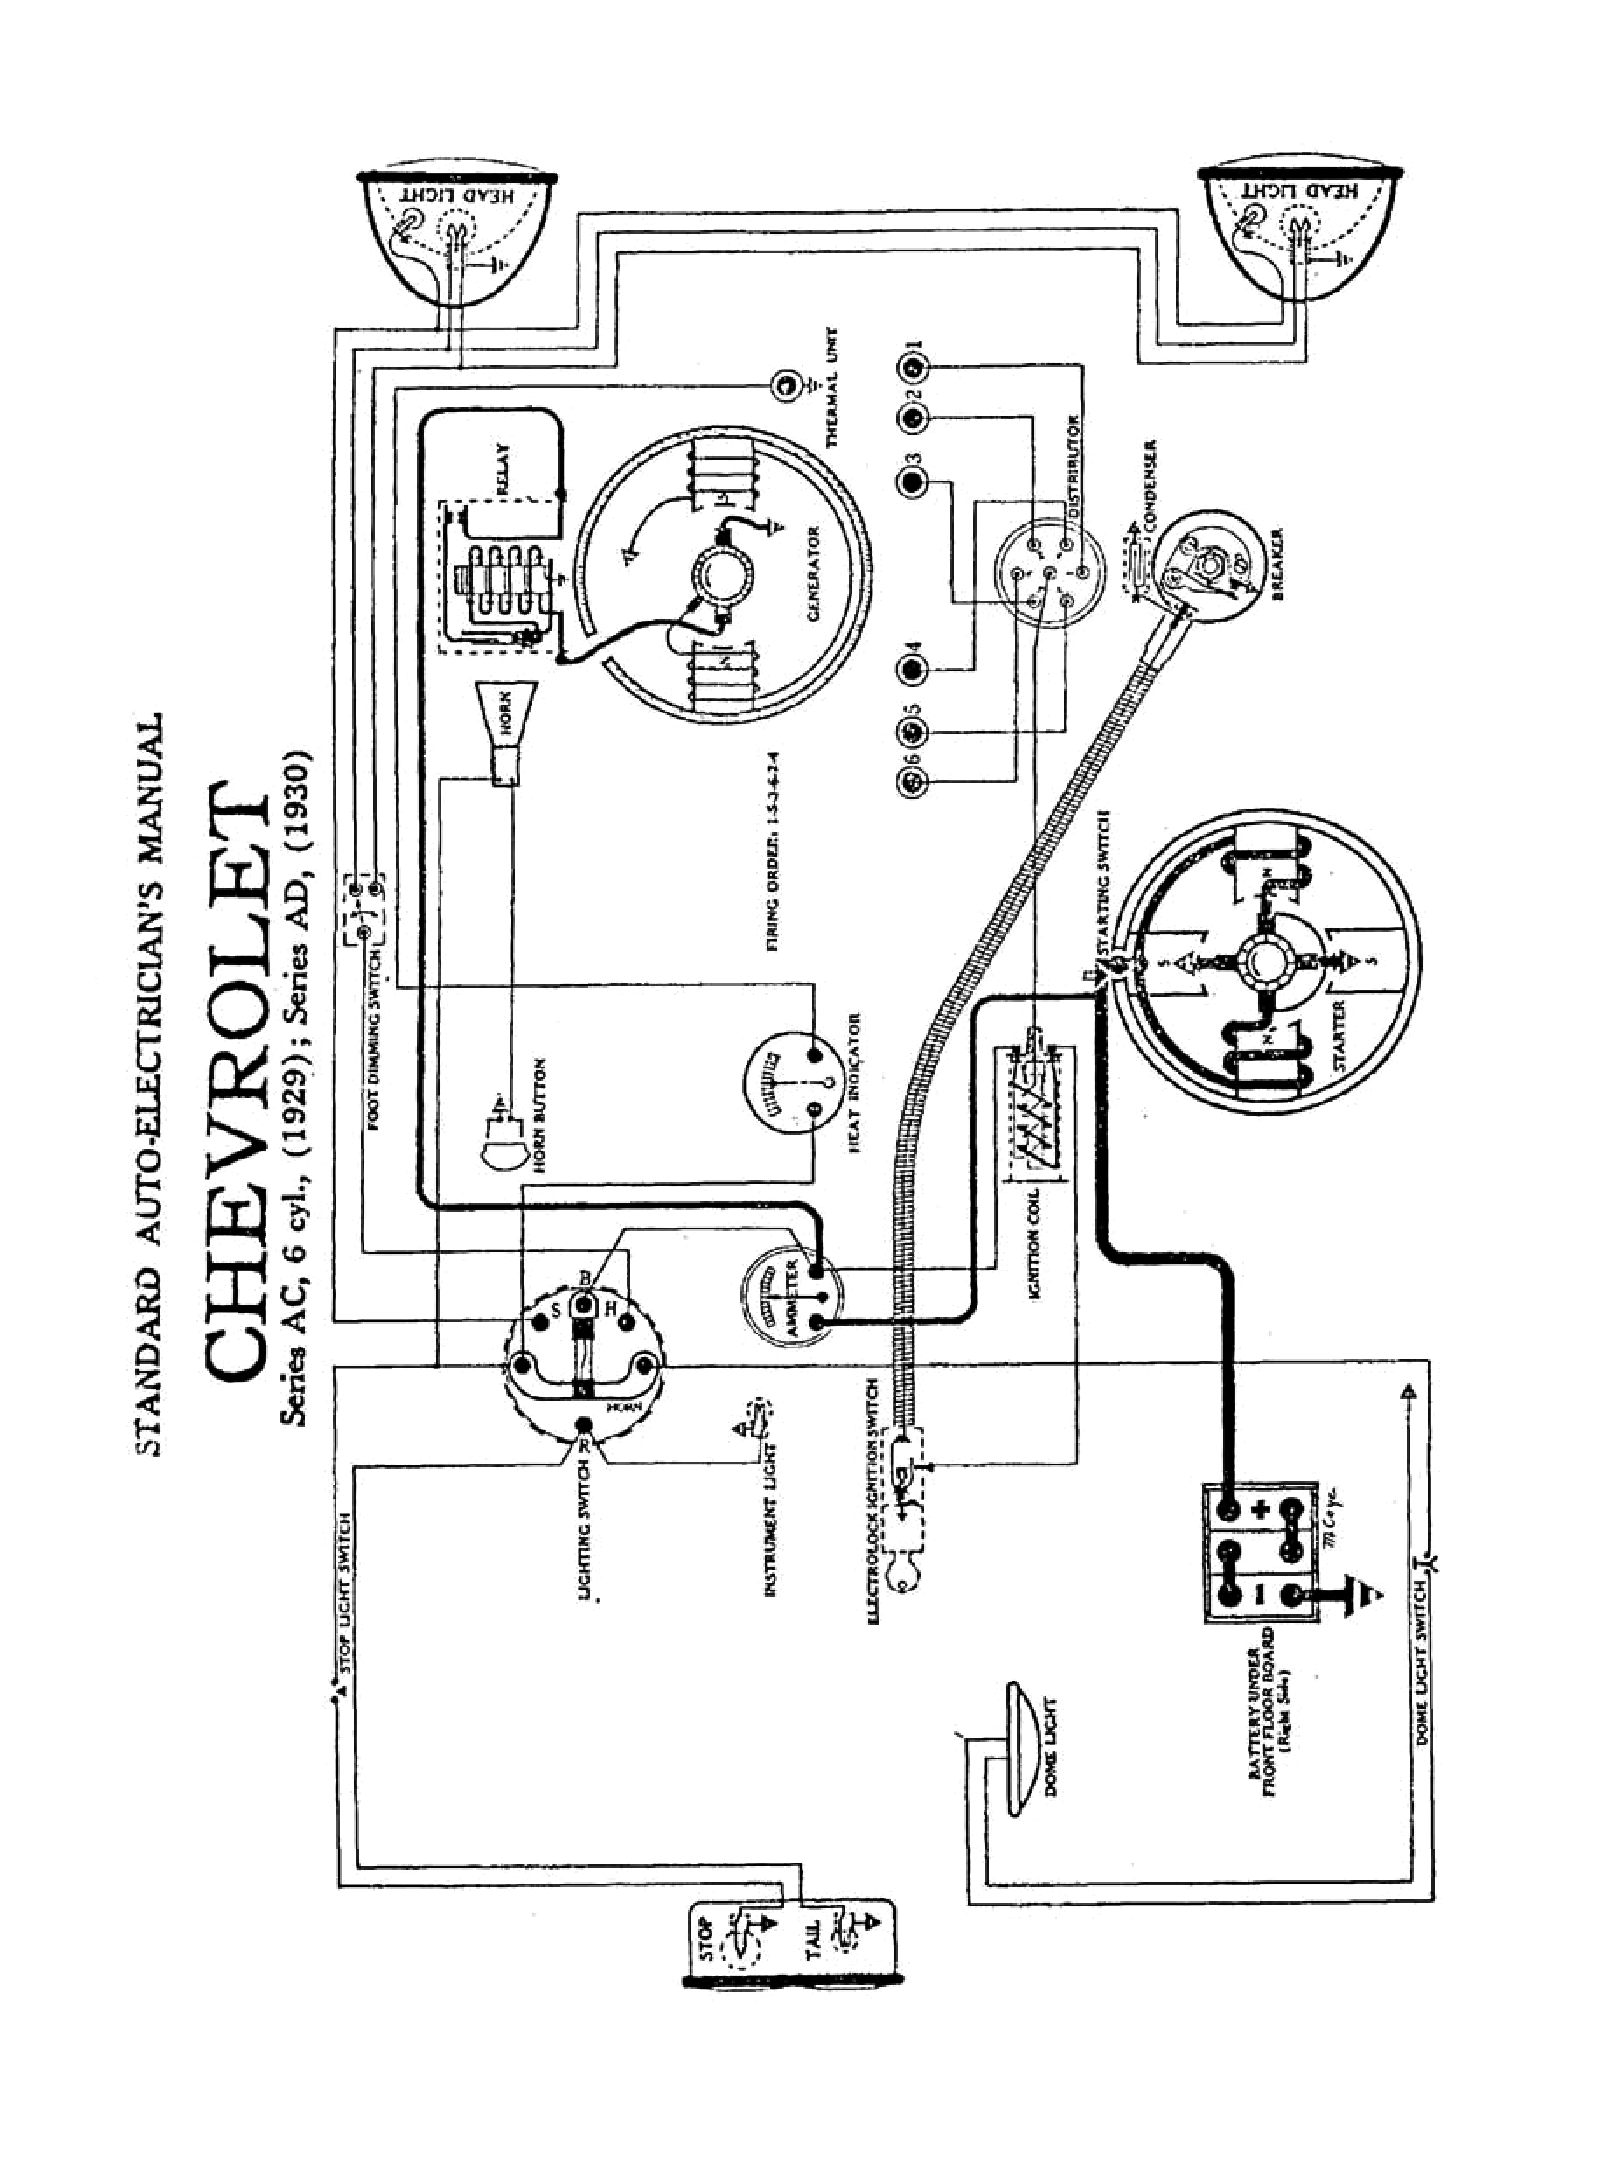 chevy wiring diagrams 1950 chevy truck wiring diagram at 1950 Chevy Truck Wiring Diagram